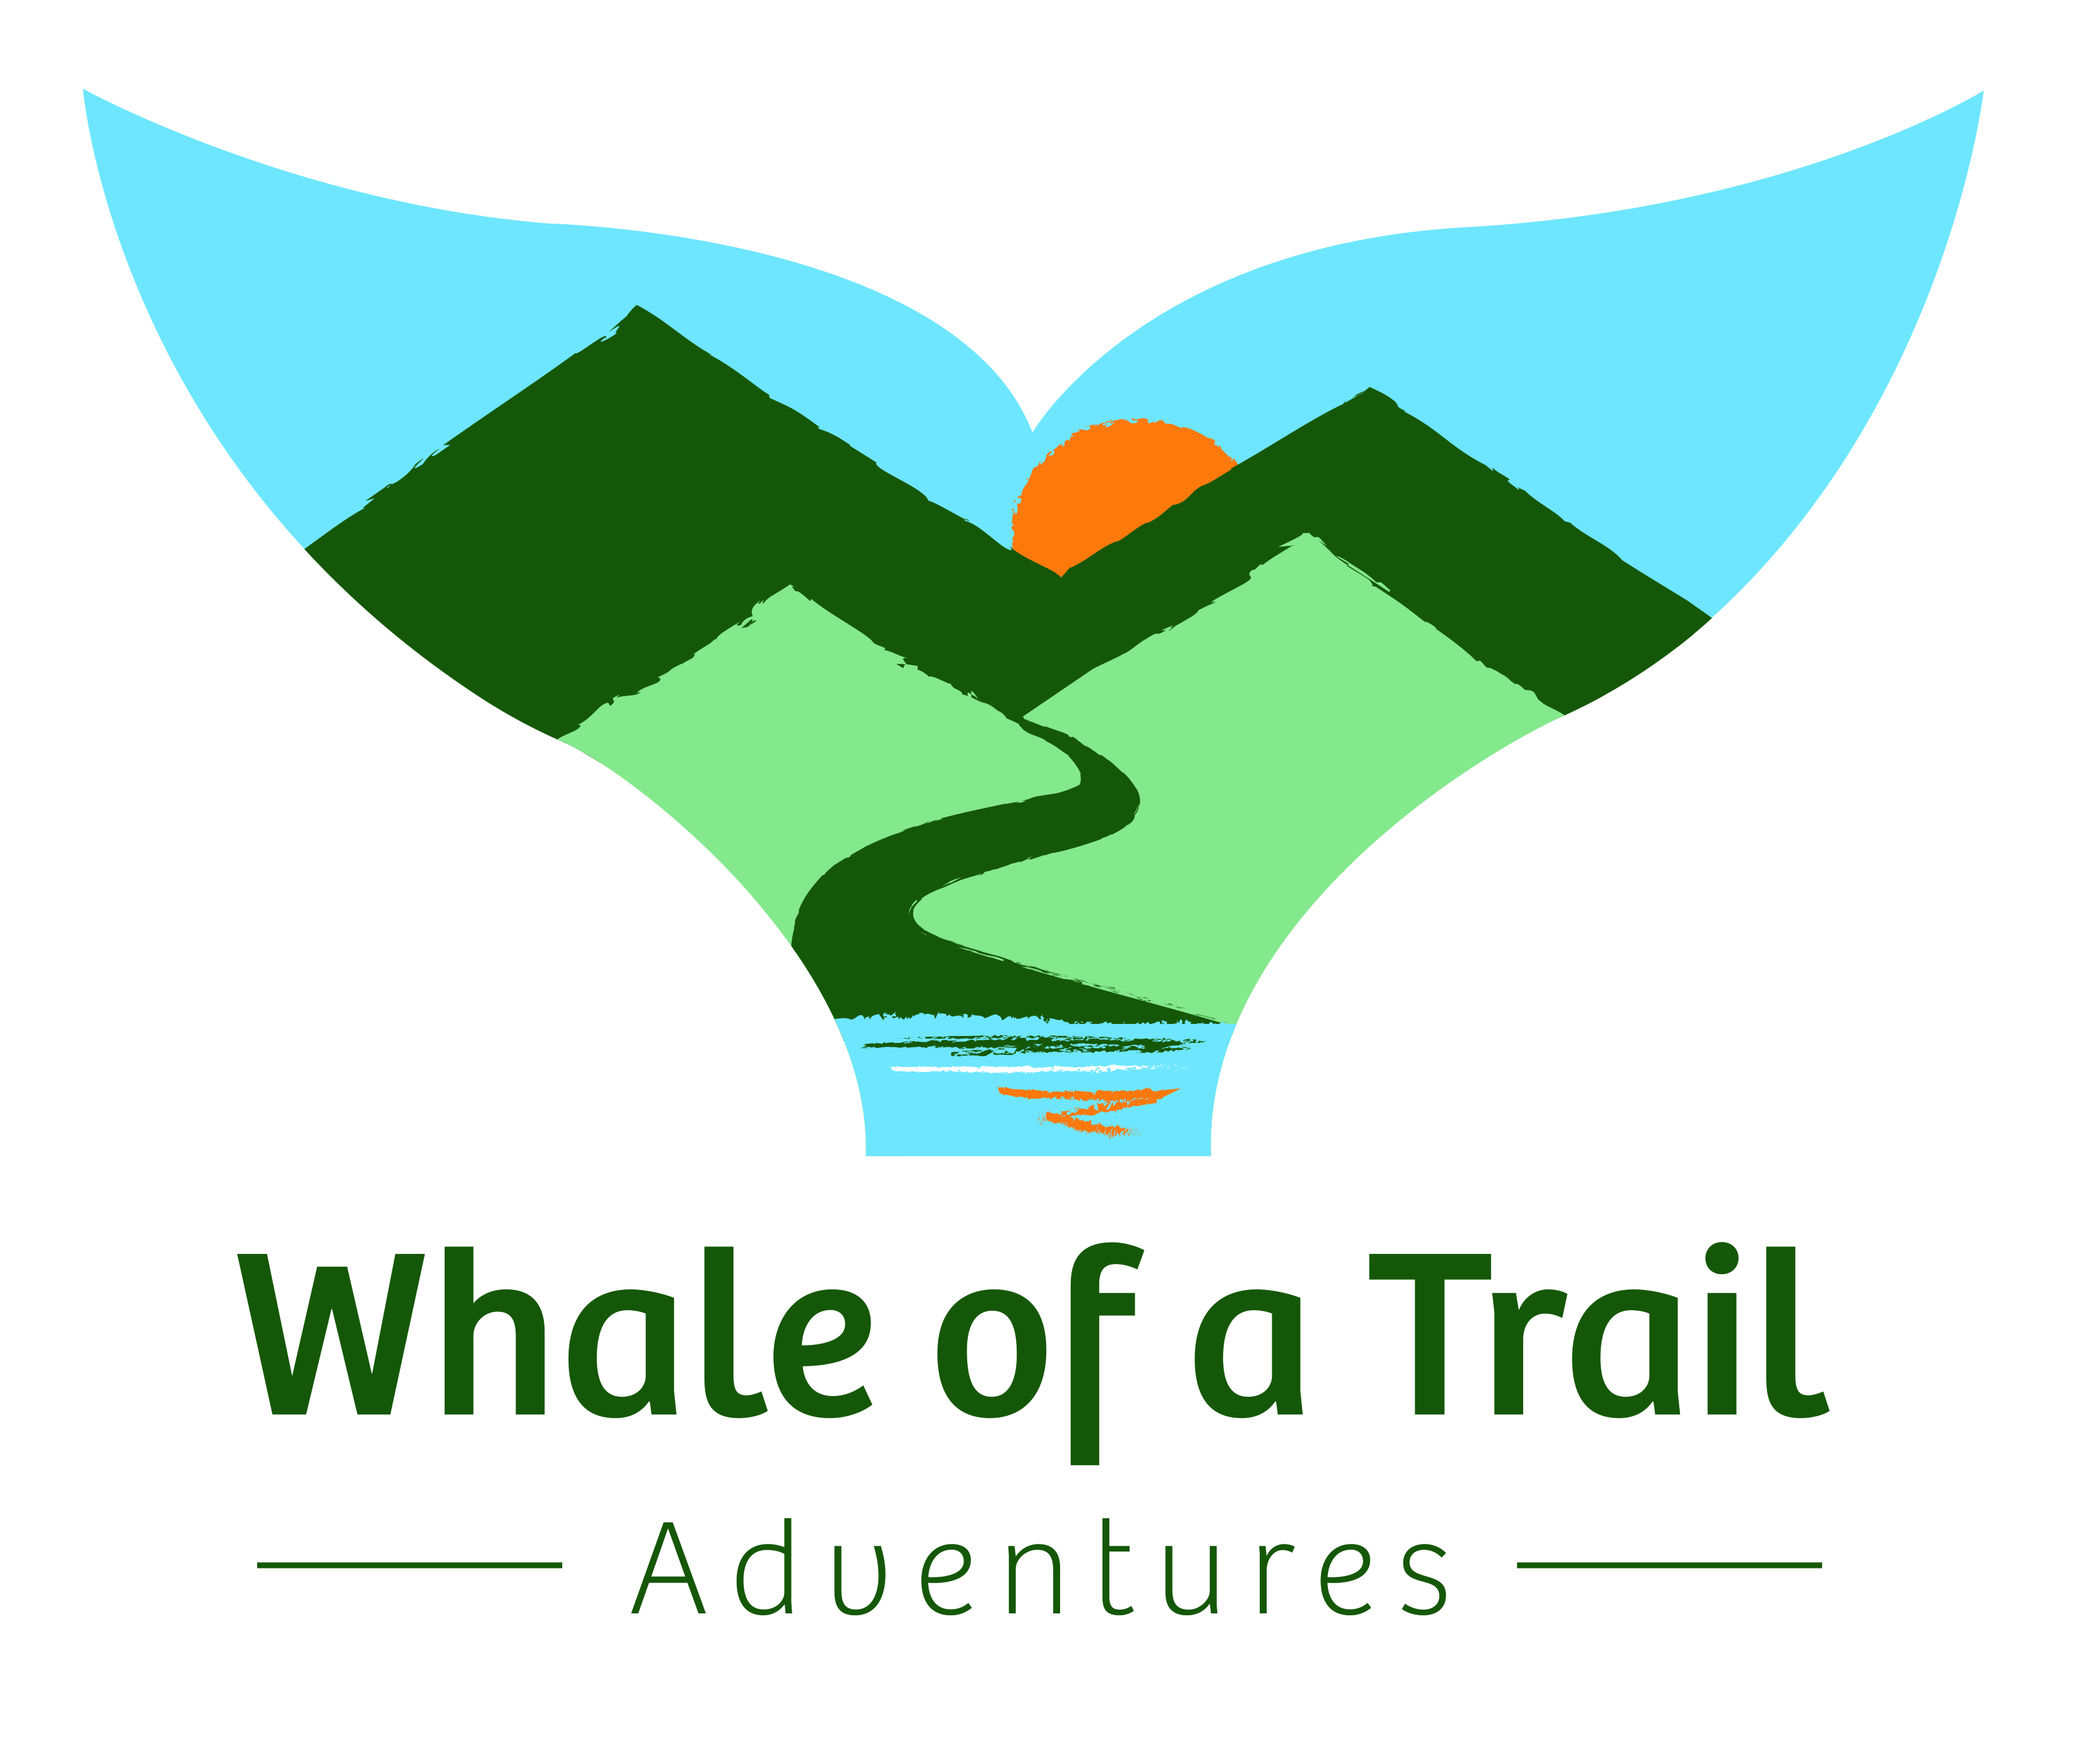 Whale of a Trail Adventures